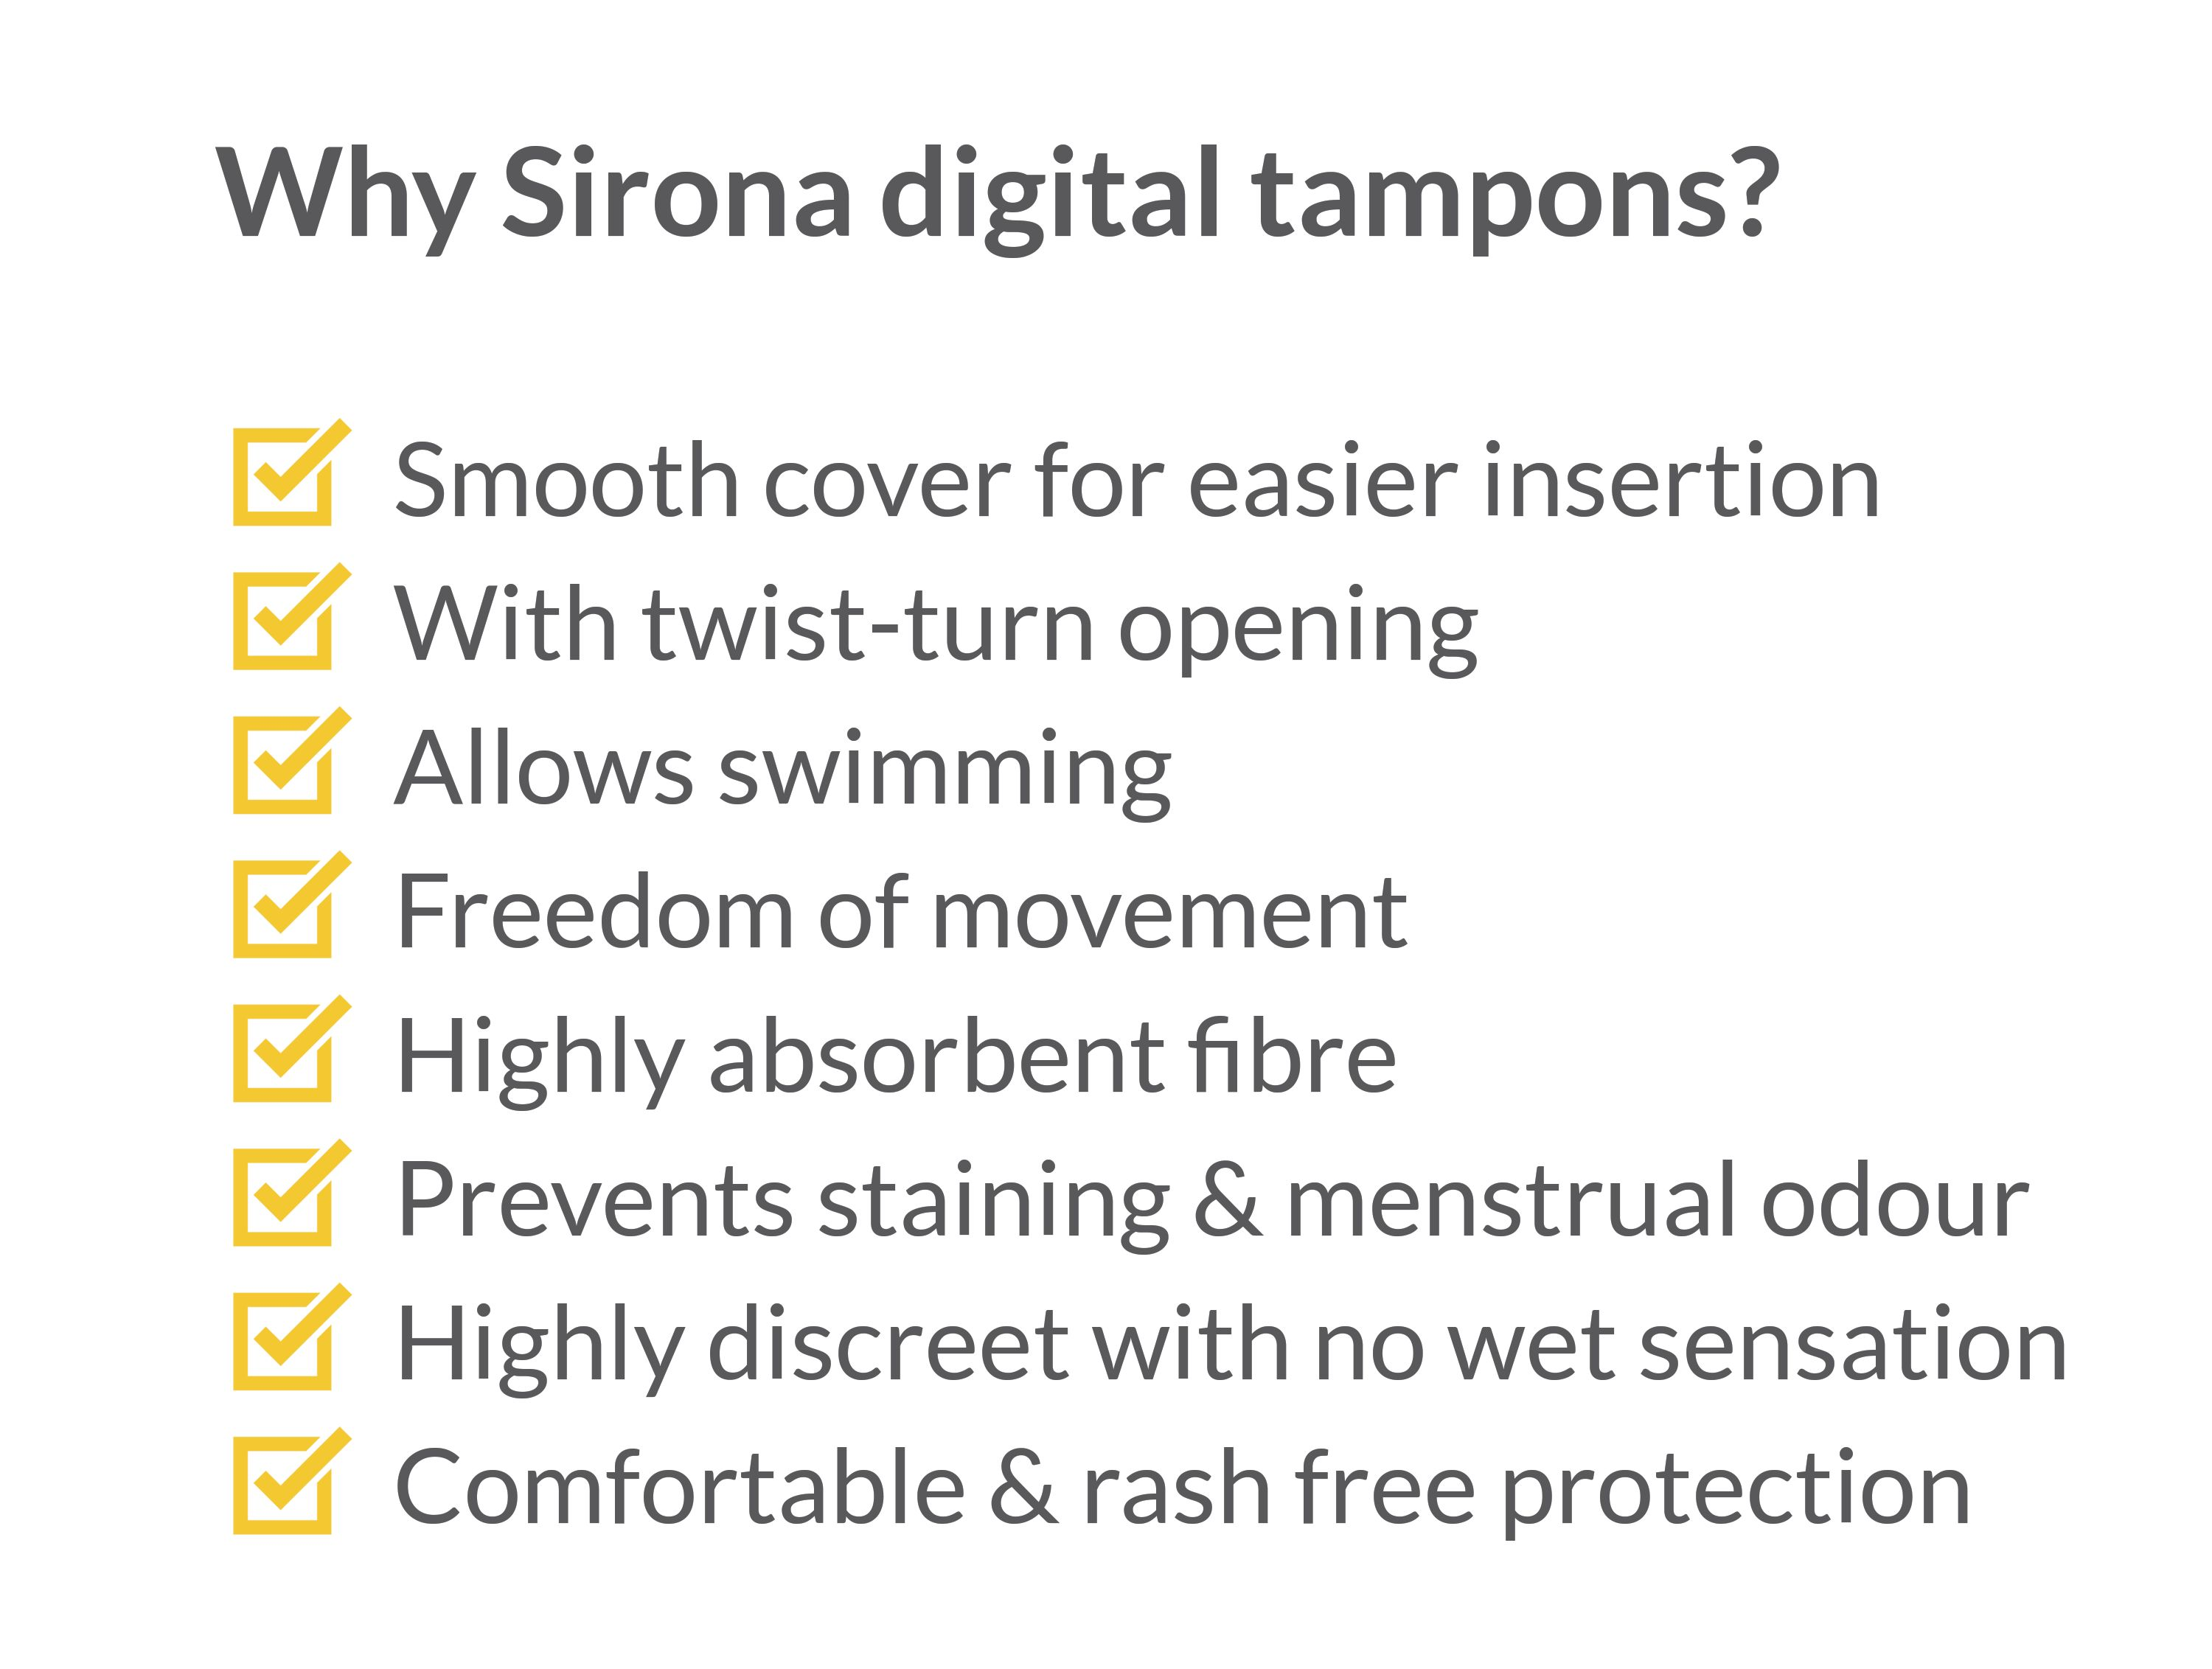 Sirona FDA Approved Premium Digital Tampon For Heavy Flow - 20 Tampon, Pack of 2-375677